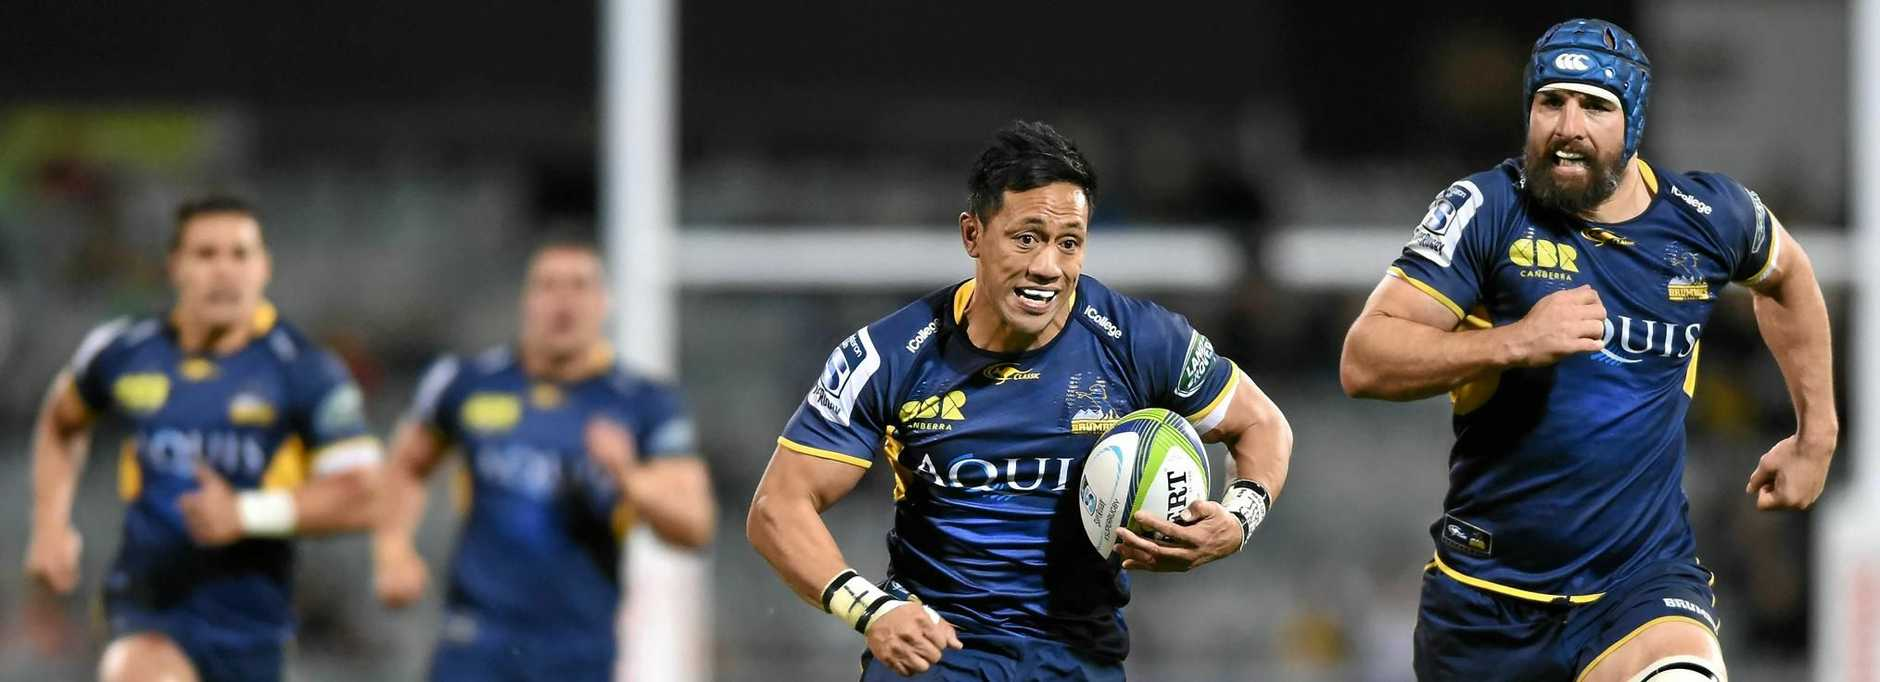 CANCER COMEBACK: A slight hamstring strain has denied ACT Brumbies star Christian Leali'ifano the shot of a comeback against the Queensland Reds after a long battle with cancer.